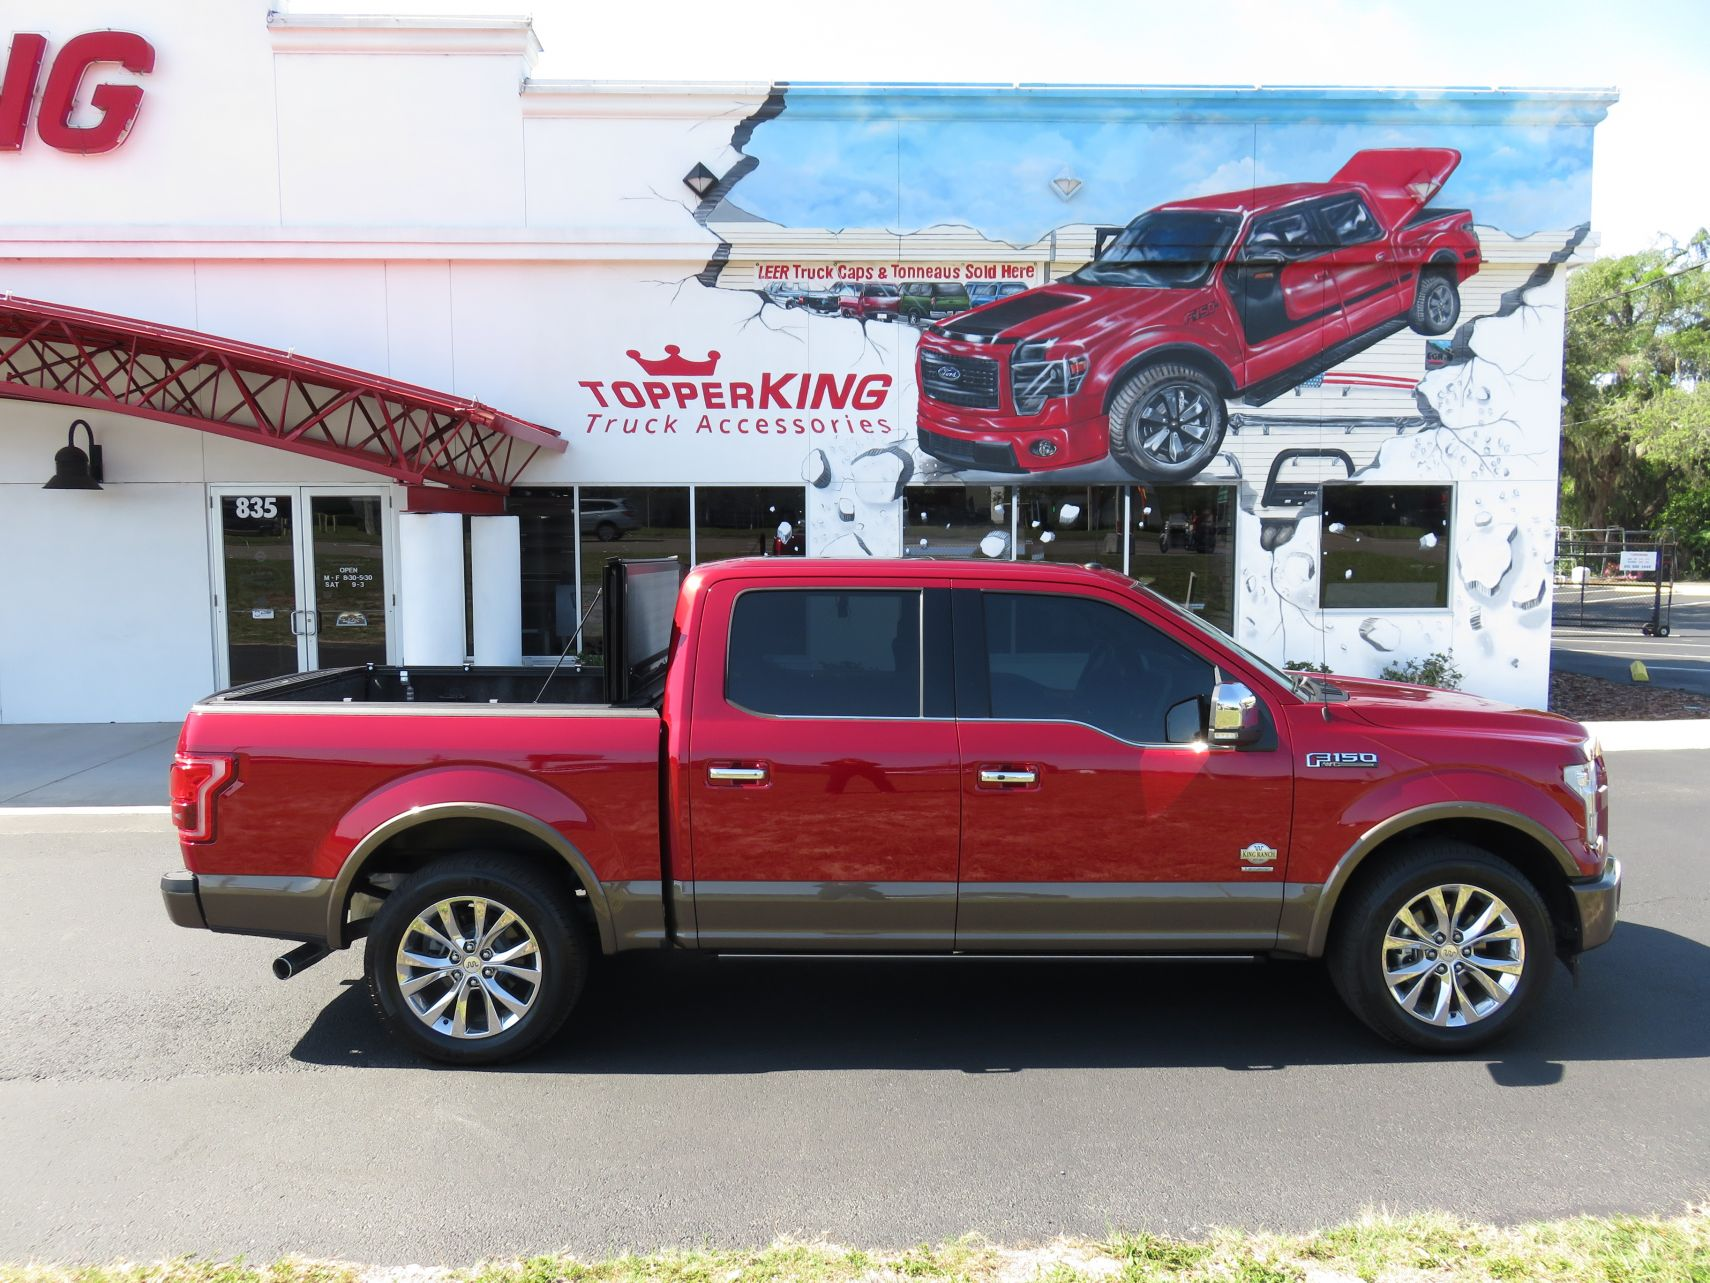 2018 ruby red ford f150 leer x2t tint and chrome accessories by topperking in